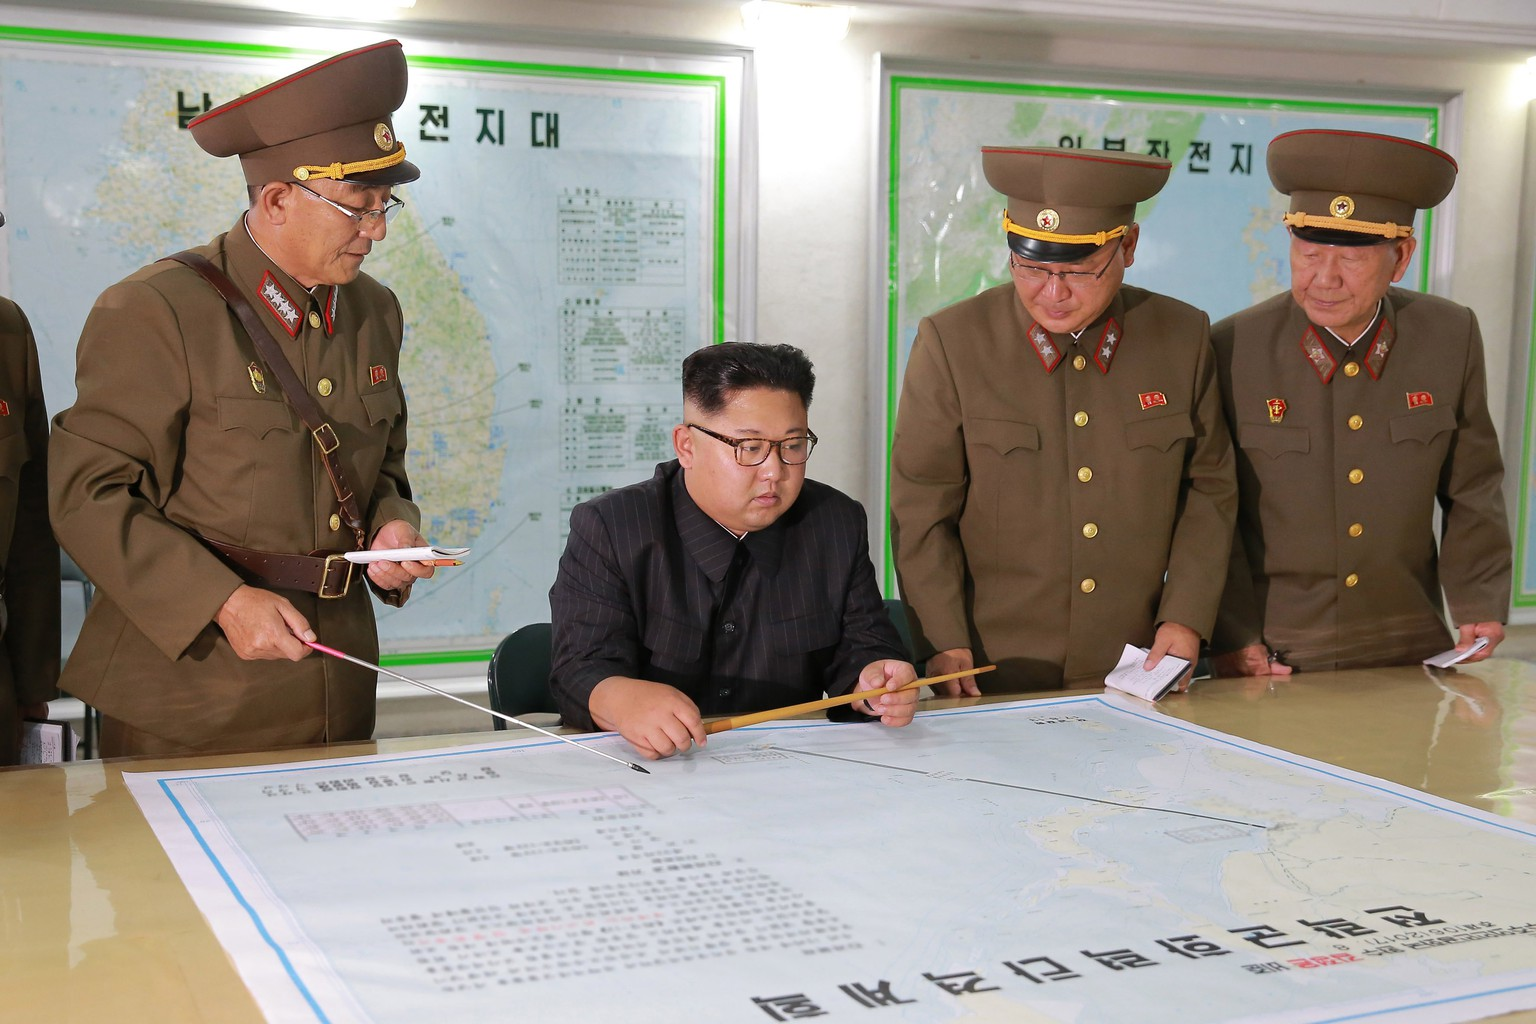 epa06145192 A picture released by the North Korean Central News Agency (KCNA) North Korean leader Kim Jong Un inspecting plans to fire missiles towards the US Pacific territory of Guam at the Command of the Strategic Force of the Korean People's Army (KPA), Pyongyang, DPRK: North Korean 14 August 2017, (issued 15 August 2017). According to North Korean state media on 09 August 2017, the North is considering a potential pre-emptive strike with medium-to-long-range strategic ballistic missiles on Guam, where US tactical bombers are based. The threat follows US President Donald J. Trump's warning to Pyongyang that any threat to the USA 'will be met with fire and fury like the world has never seen.' The exchanges marked rising tensions between the two countries.  EPA/KCNA